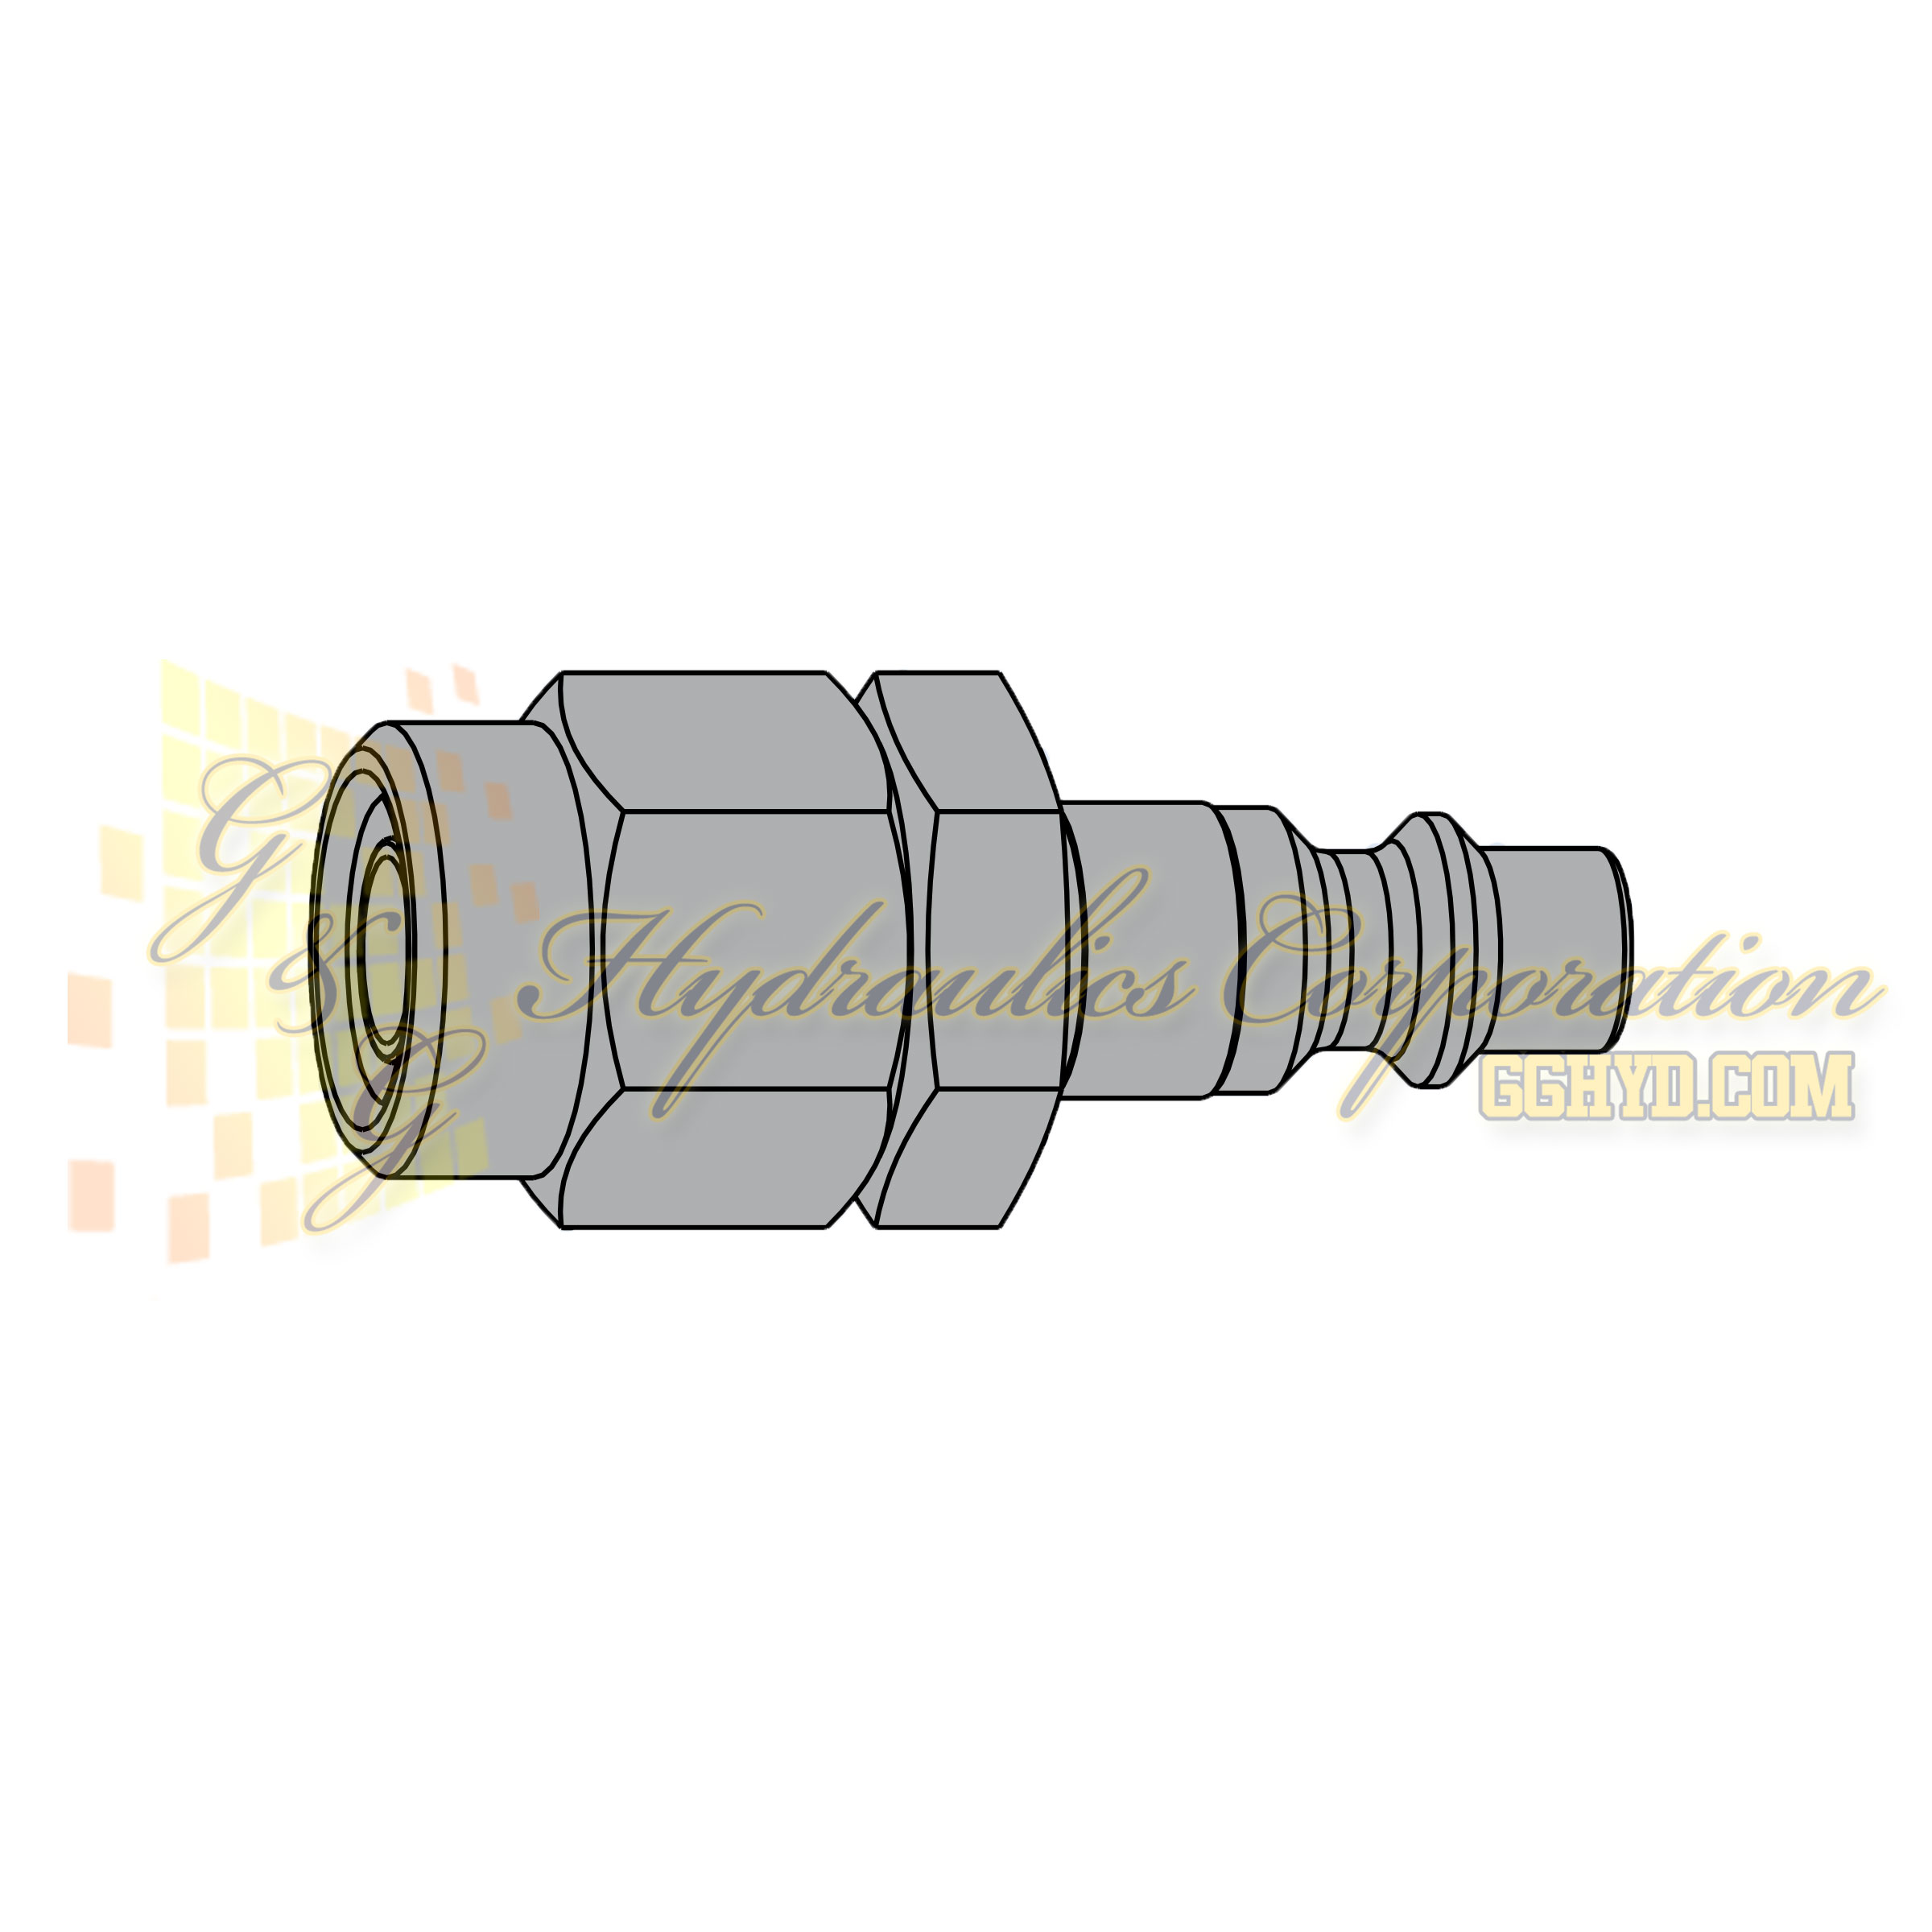 10-310-2063 CEJN Quick Disconnect eSafe Vented Safety Coupler, 9.5 x 13.5 mm Stream-Line connection, 232 PSI (16 bar)